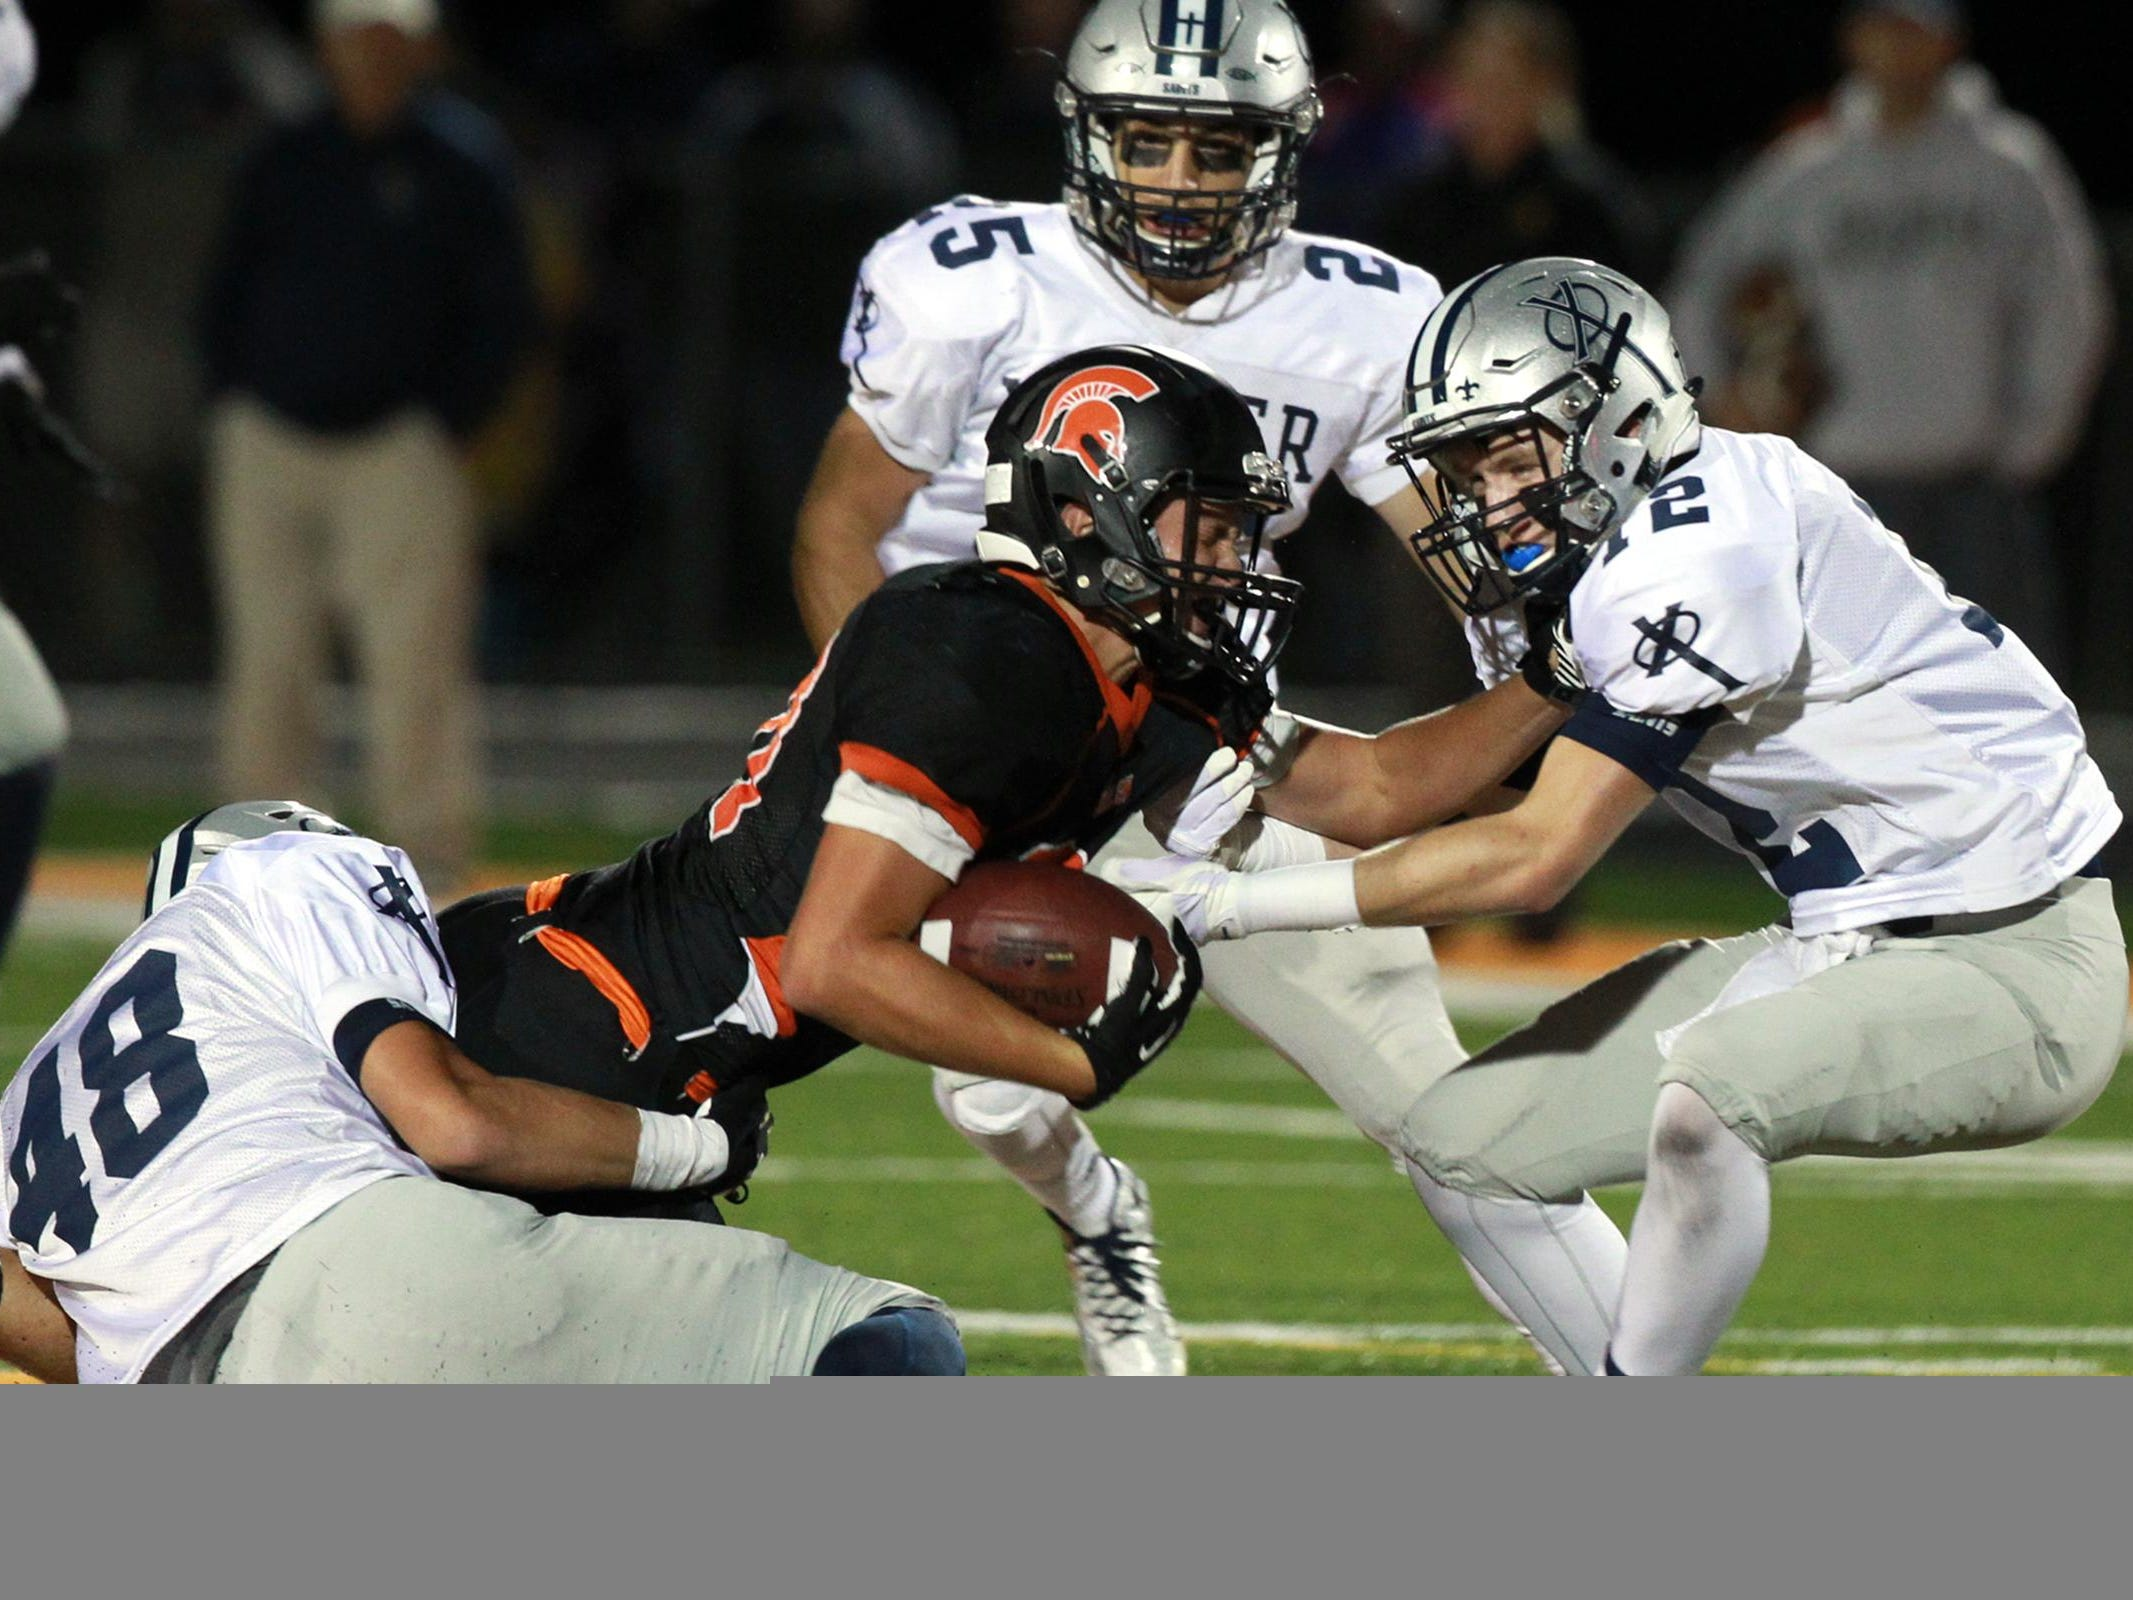 Solon's Bo Black converts a third down during the Spartans' game against Cedar Rapids Xavier at Solon on Friday.